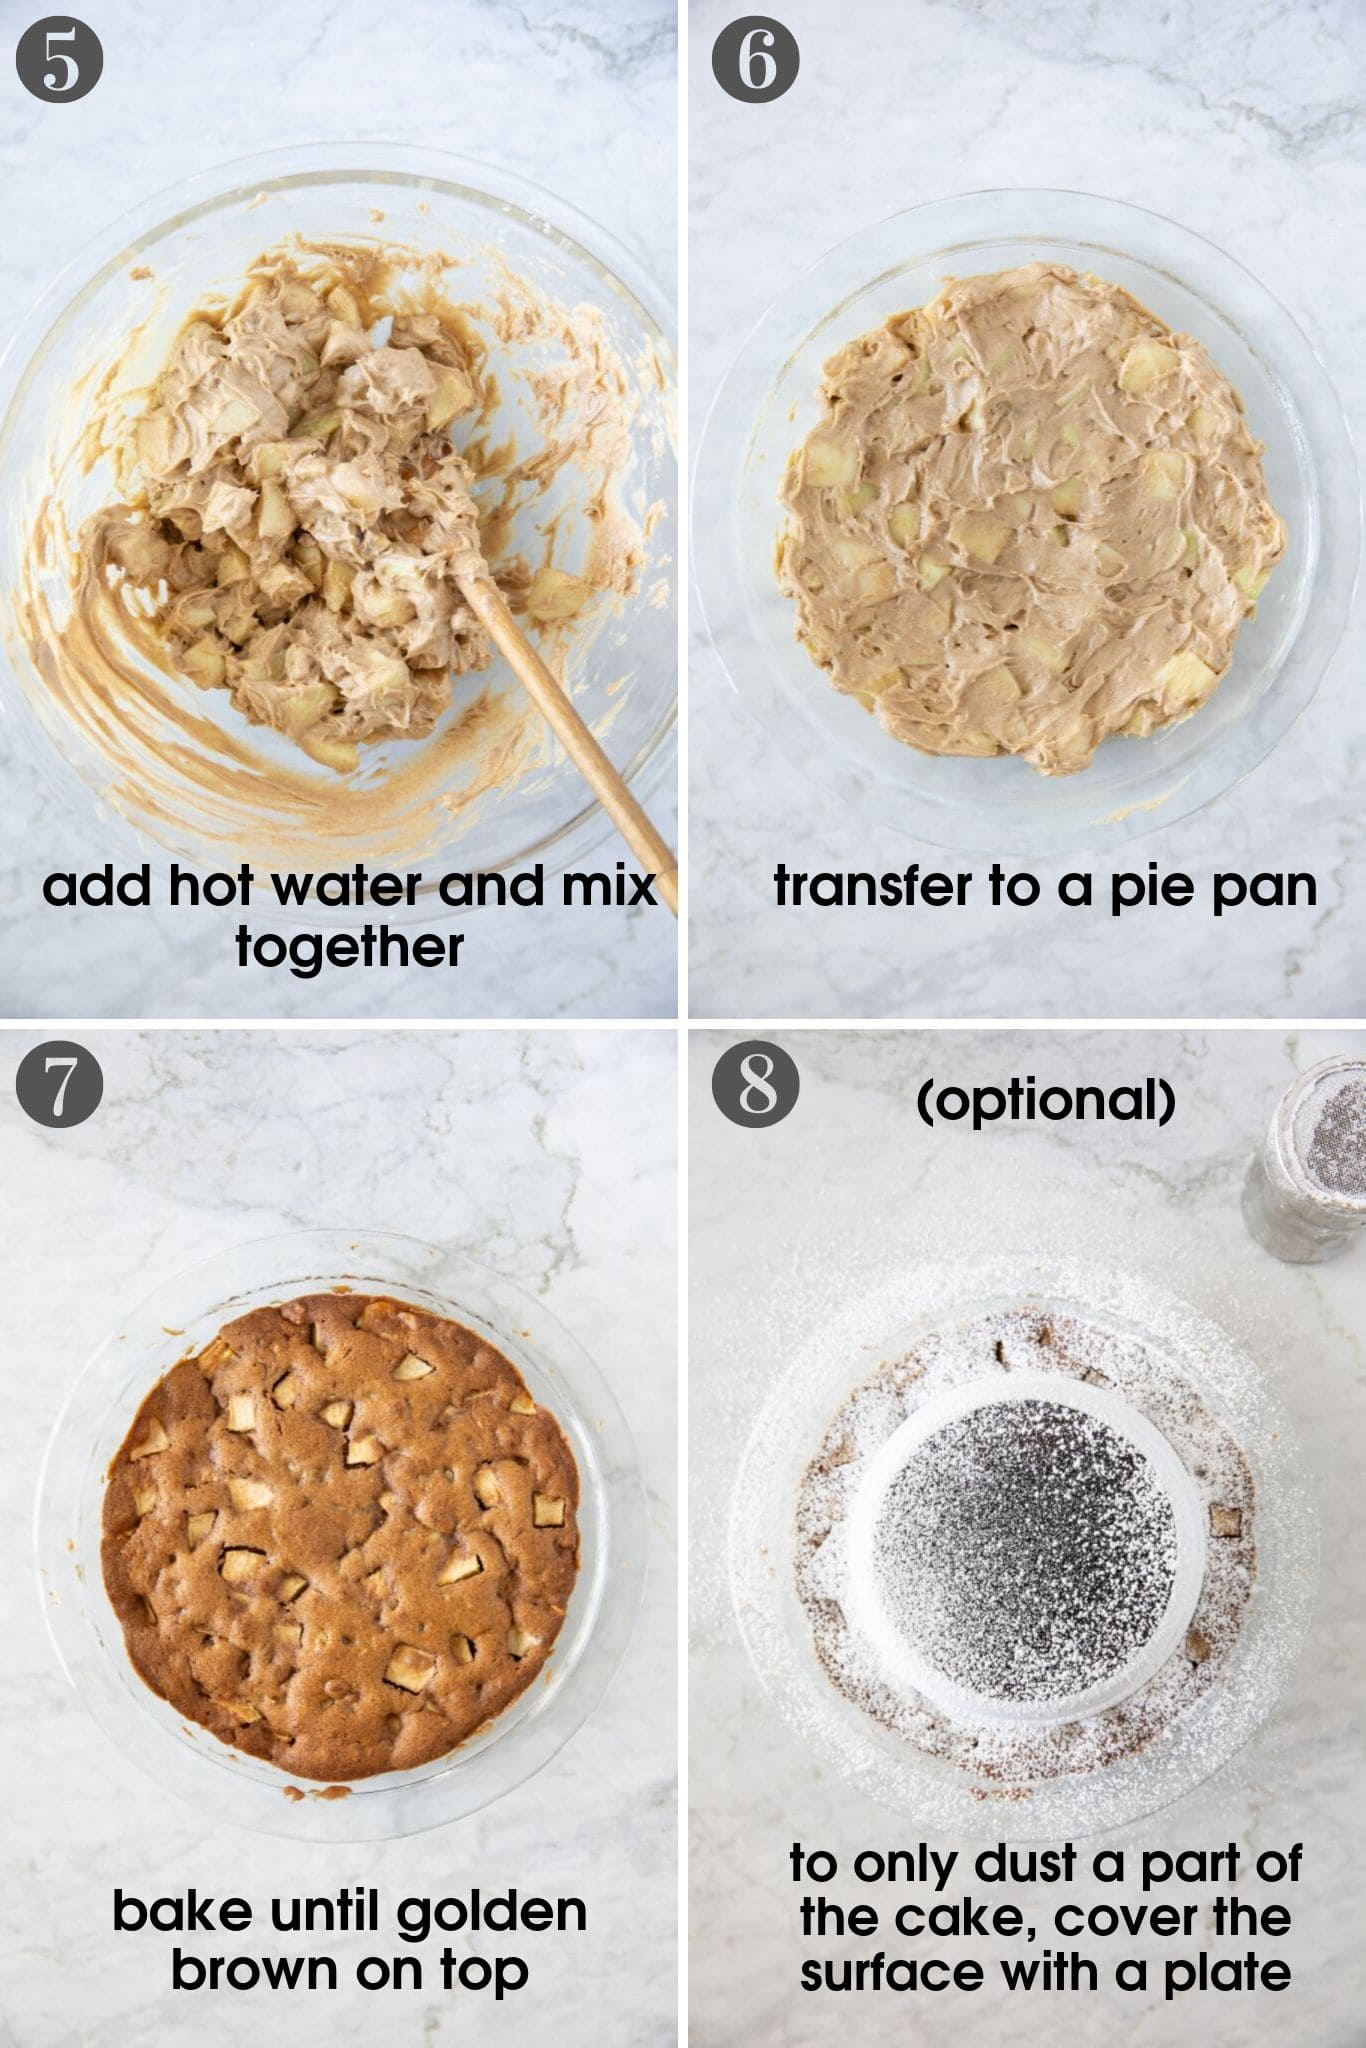 four photos showing apple walnut pie batter being mixed in a bowl, added to a pie pan, baked finished cake and dusting with powdered sugar